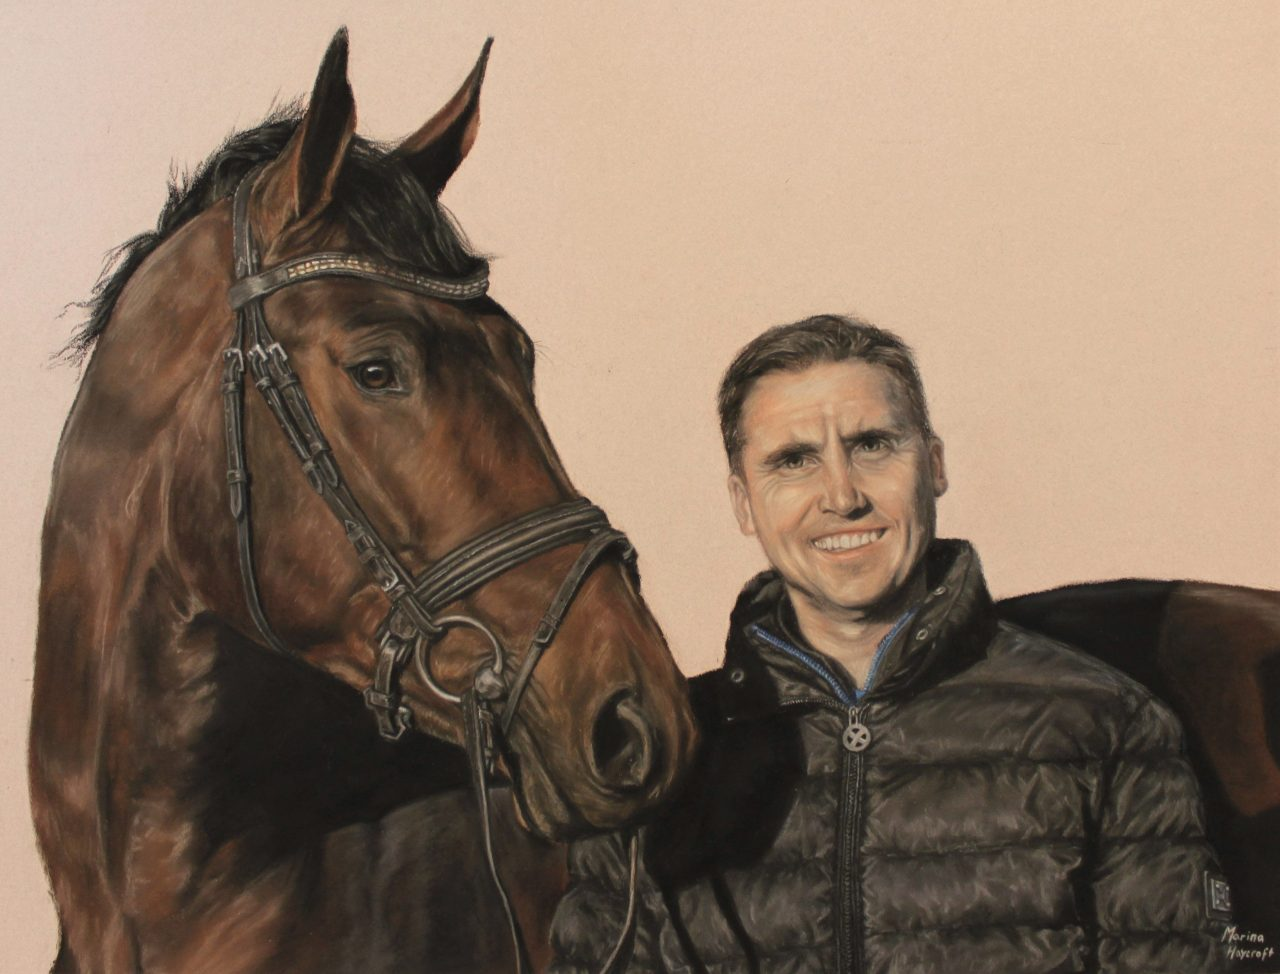 https://www.customhorseportraits.com/wp-content/uploads/Andreas-Portrait-revised-1-site-e1555104088944-1280x974.jpg